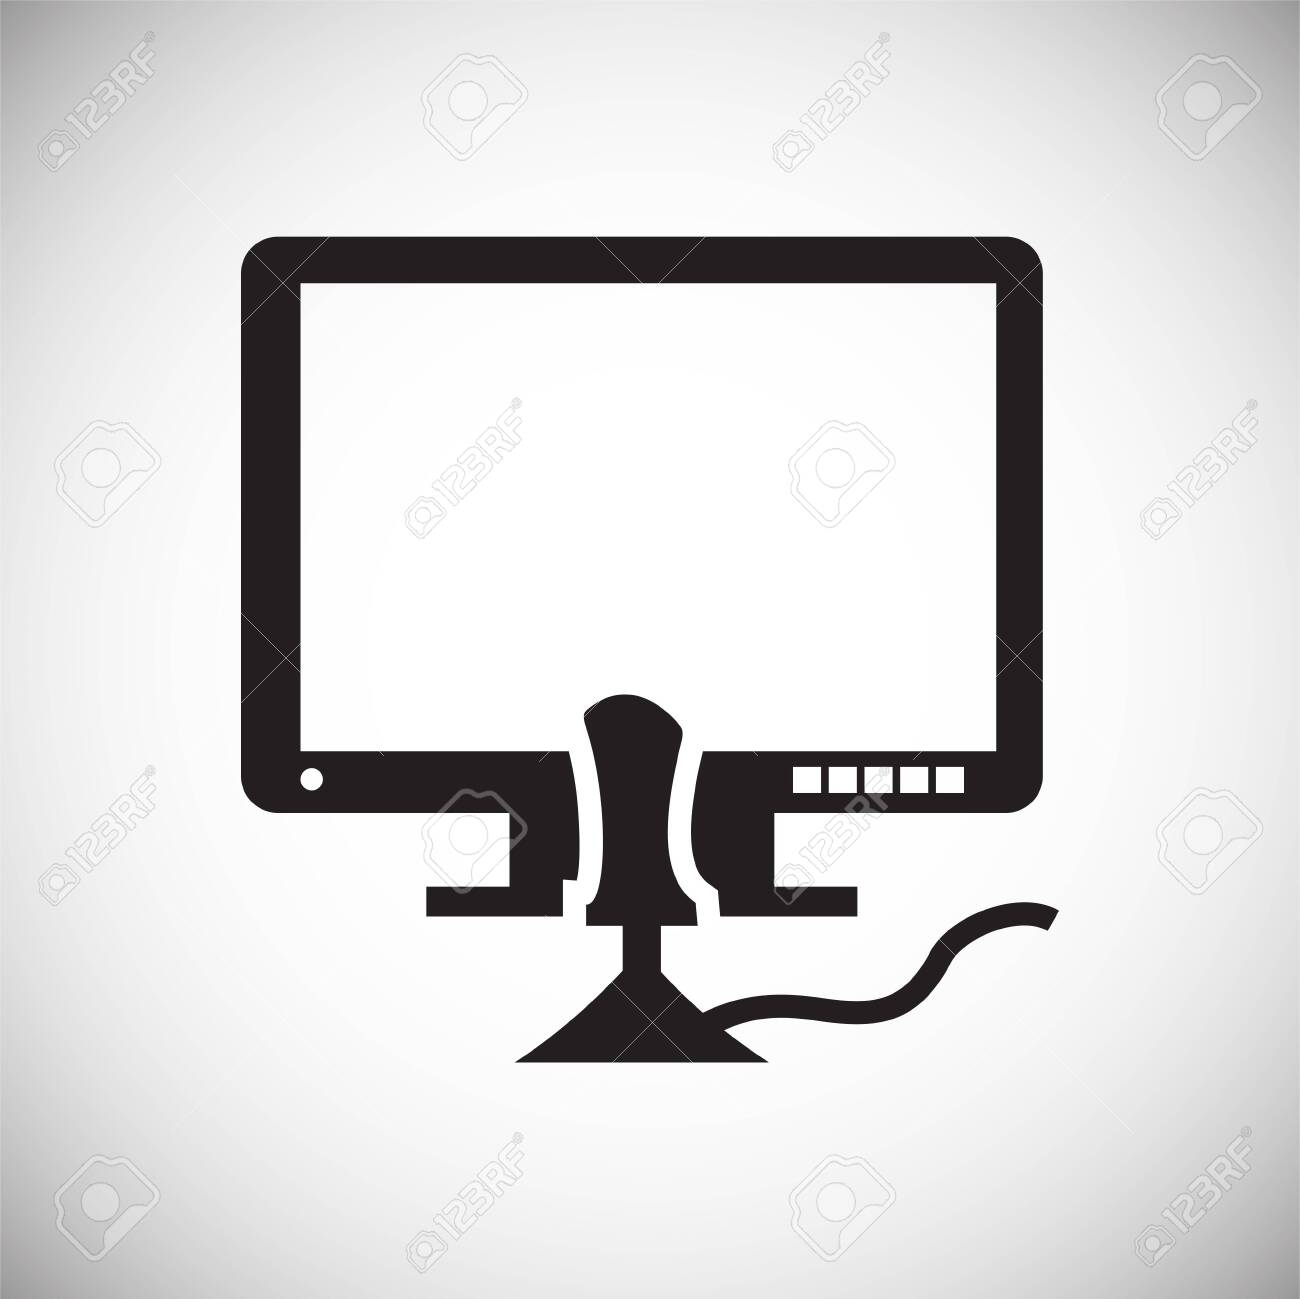 Gaming icon on background for graphic and web design. Simple vector sign. Internet concept symbol for website button or mobile app. - 120469464